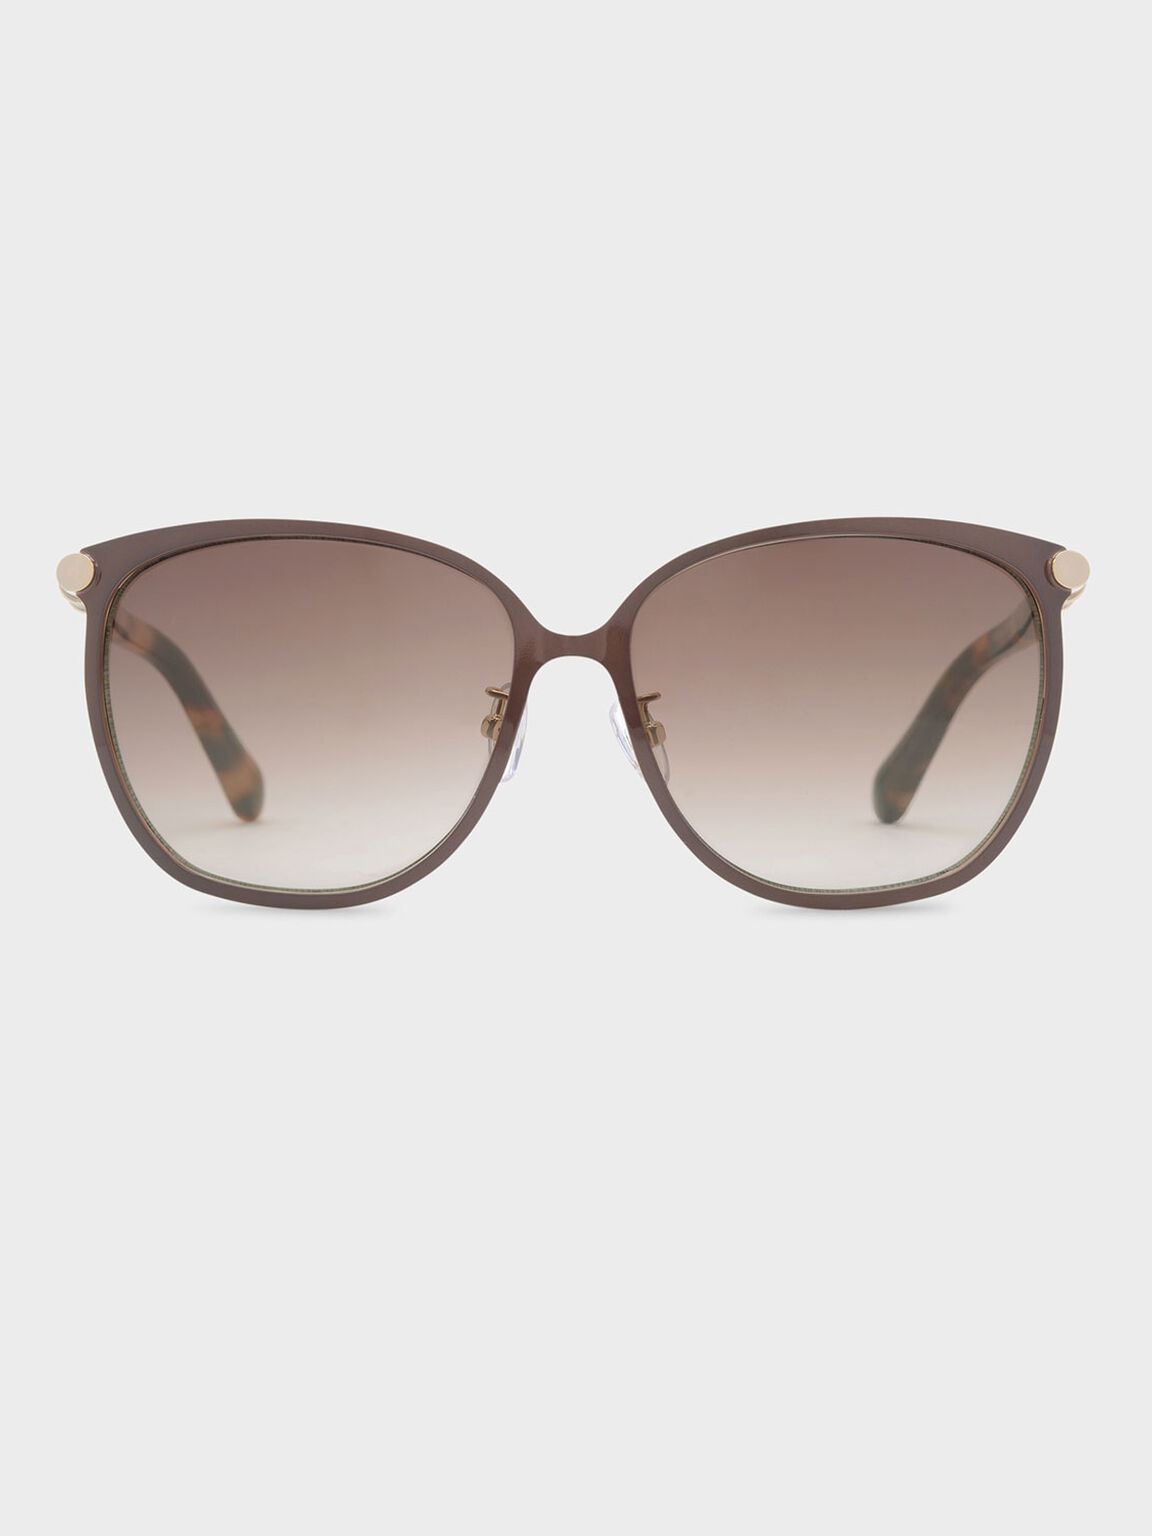 Oversized Sunglasses, Brown, hi-res